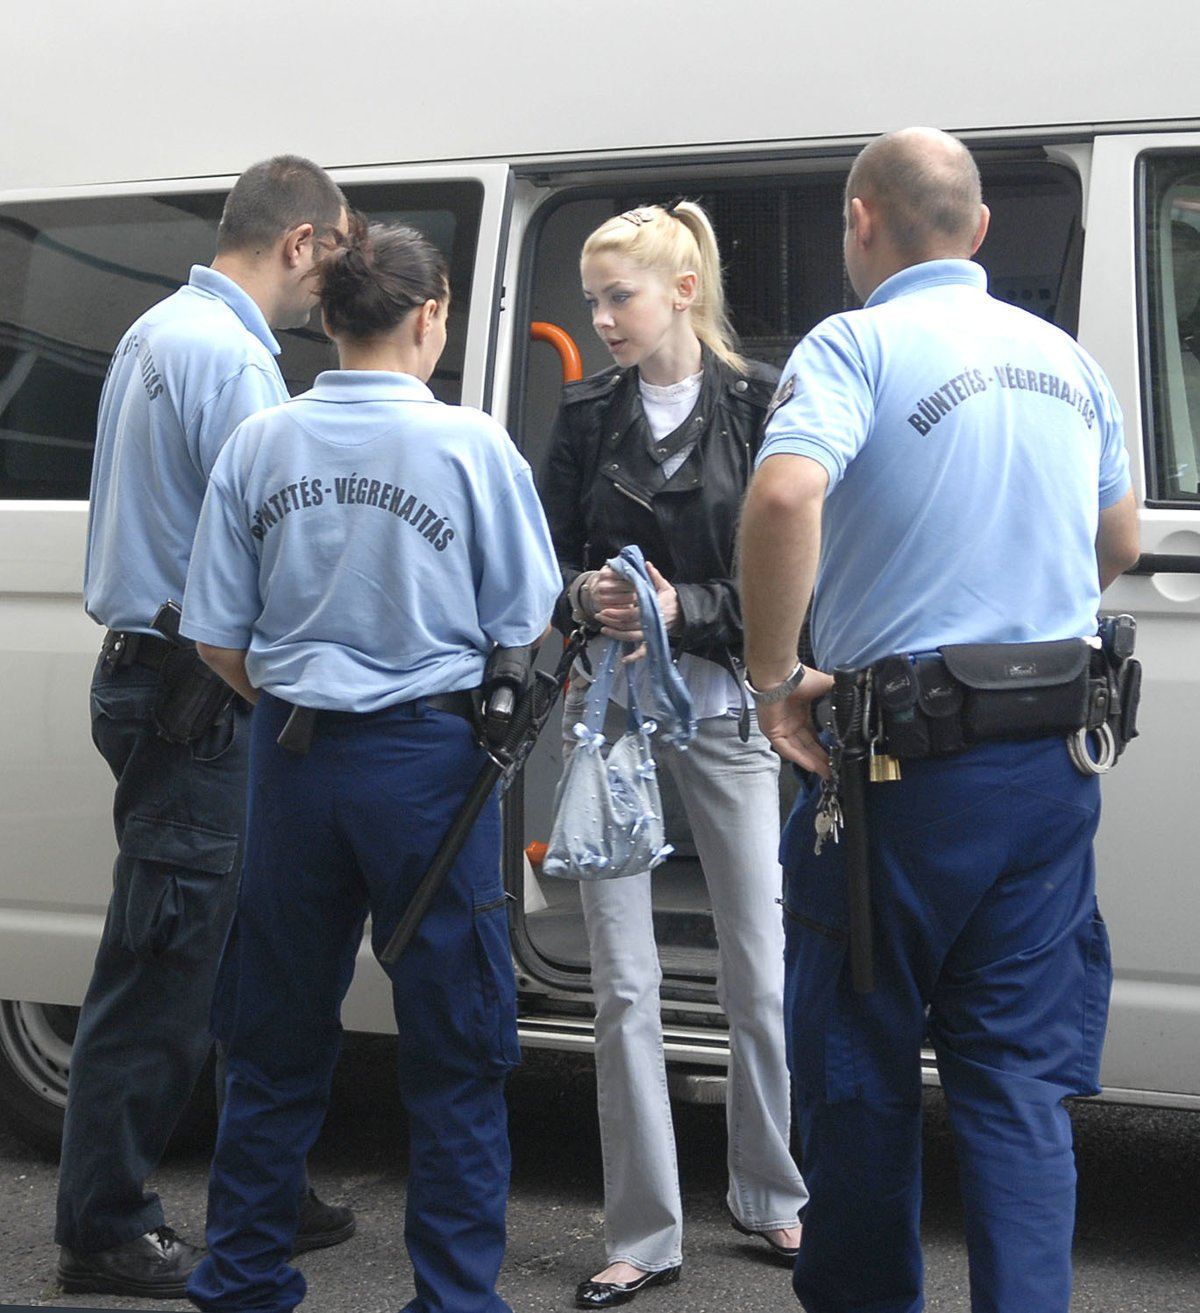 Slovak Driver Who Killed Four In An Accident In Hungary Released On